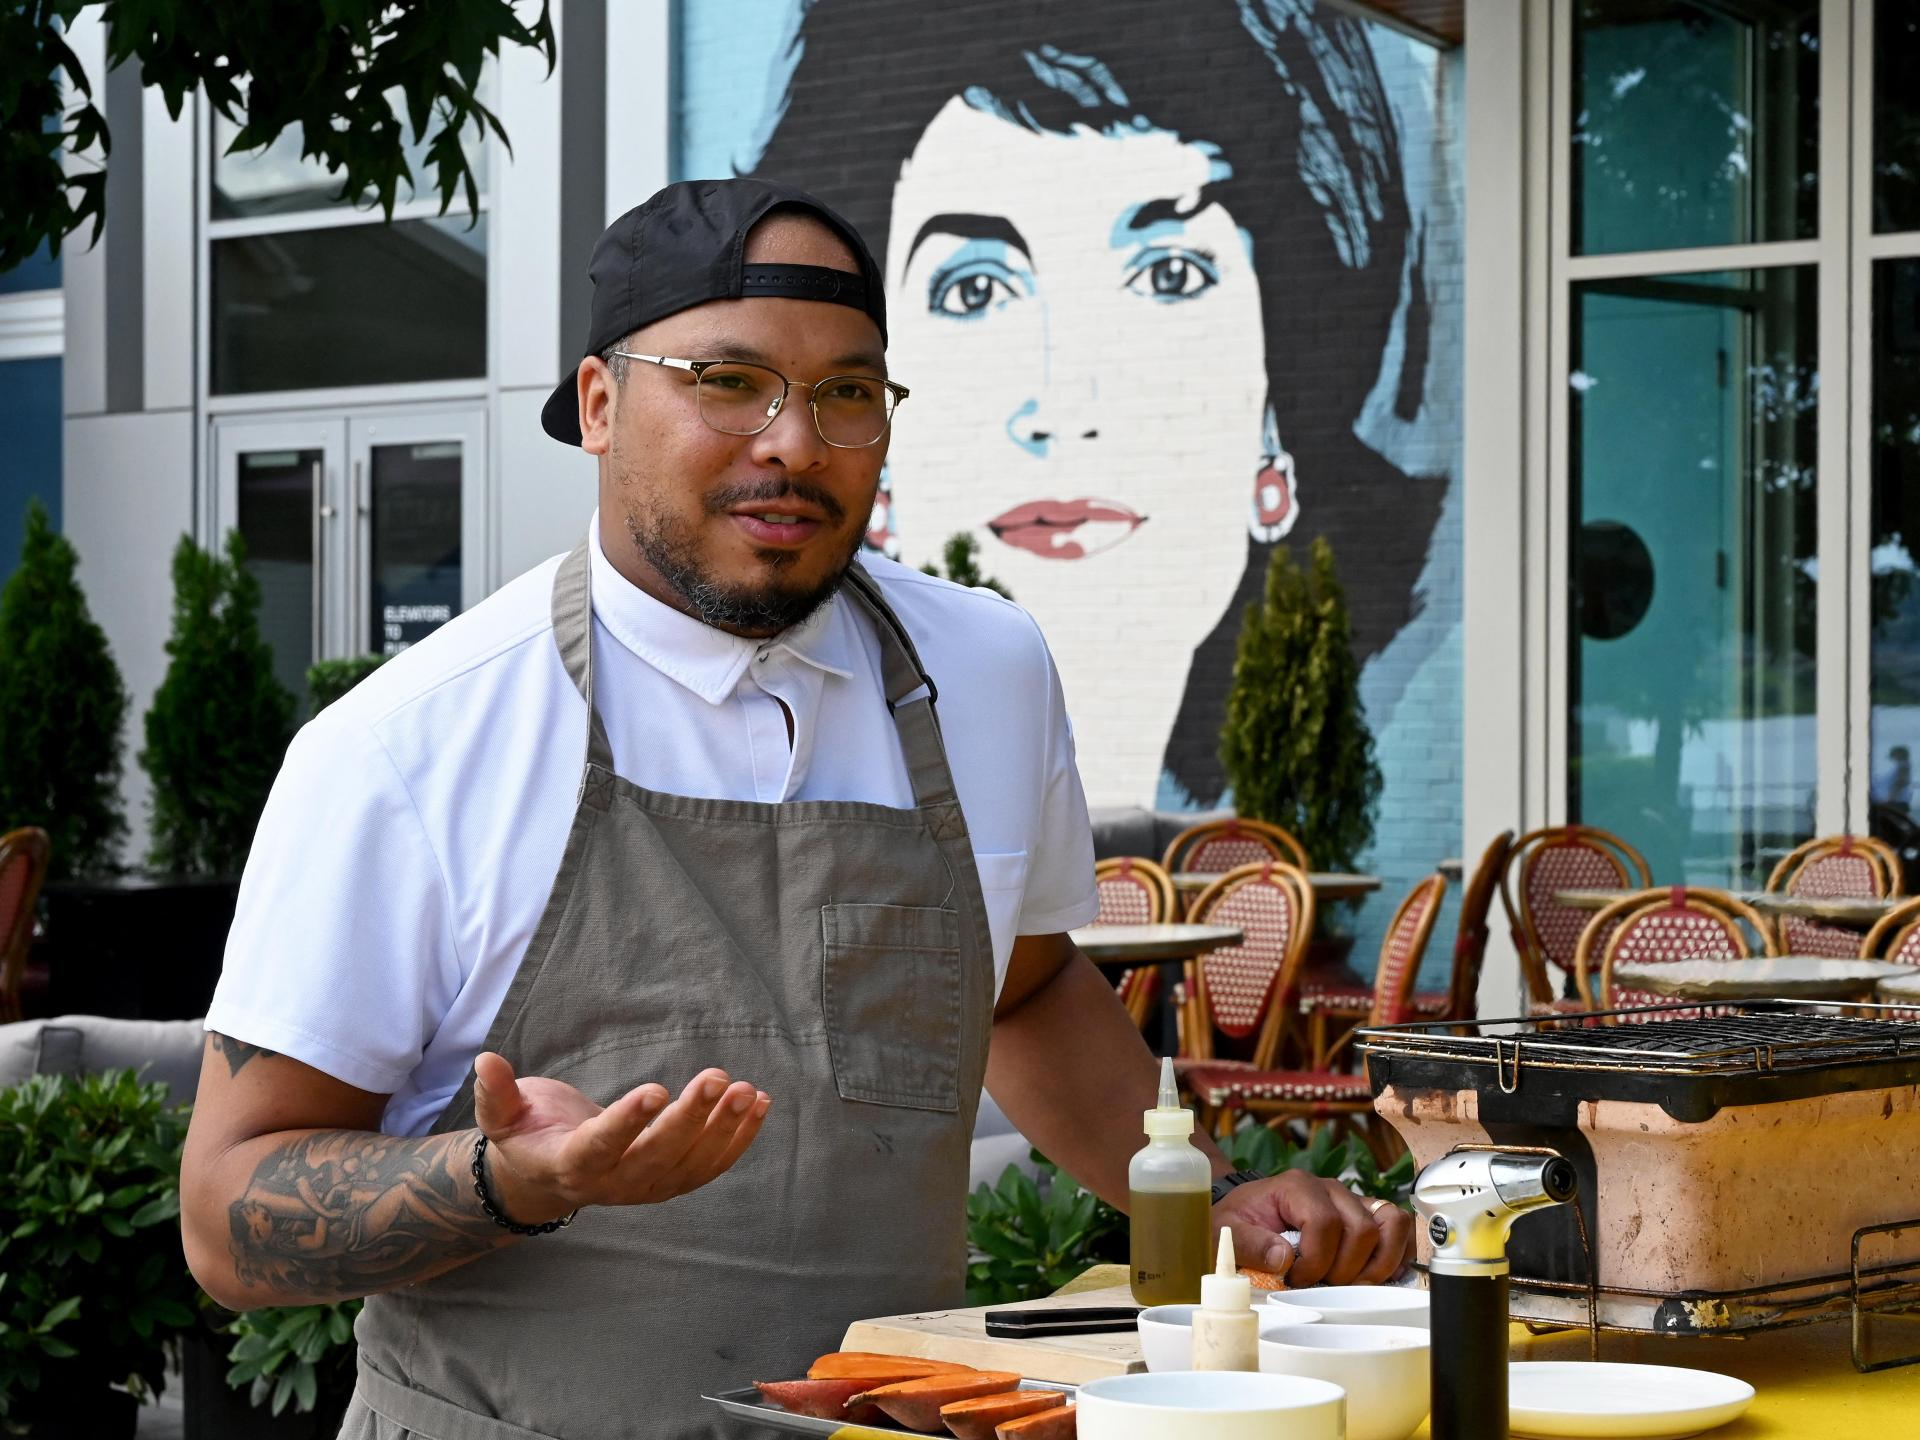 Executive chef Jerome Grant speaking about African American cuisine, its origins, ingredients and influence on American cuisine during a cooking demonstration in front of the American bistro Jackie in Washington, DC.